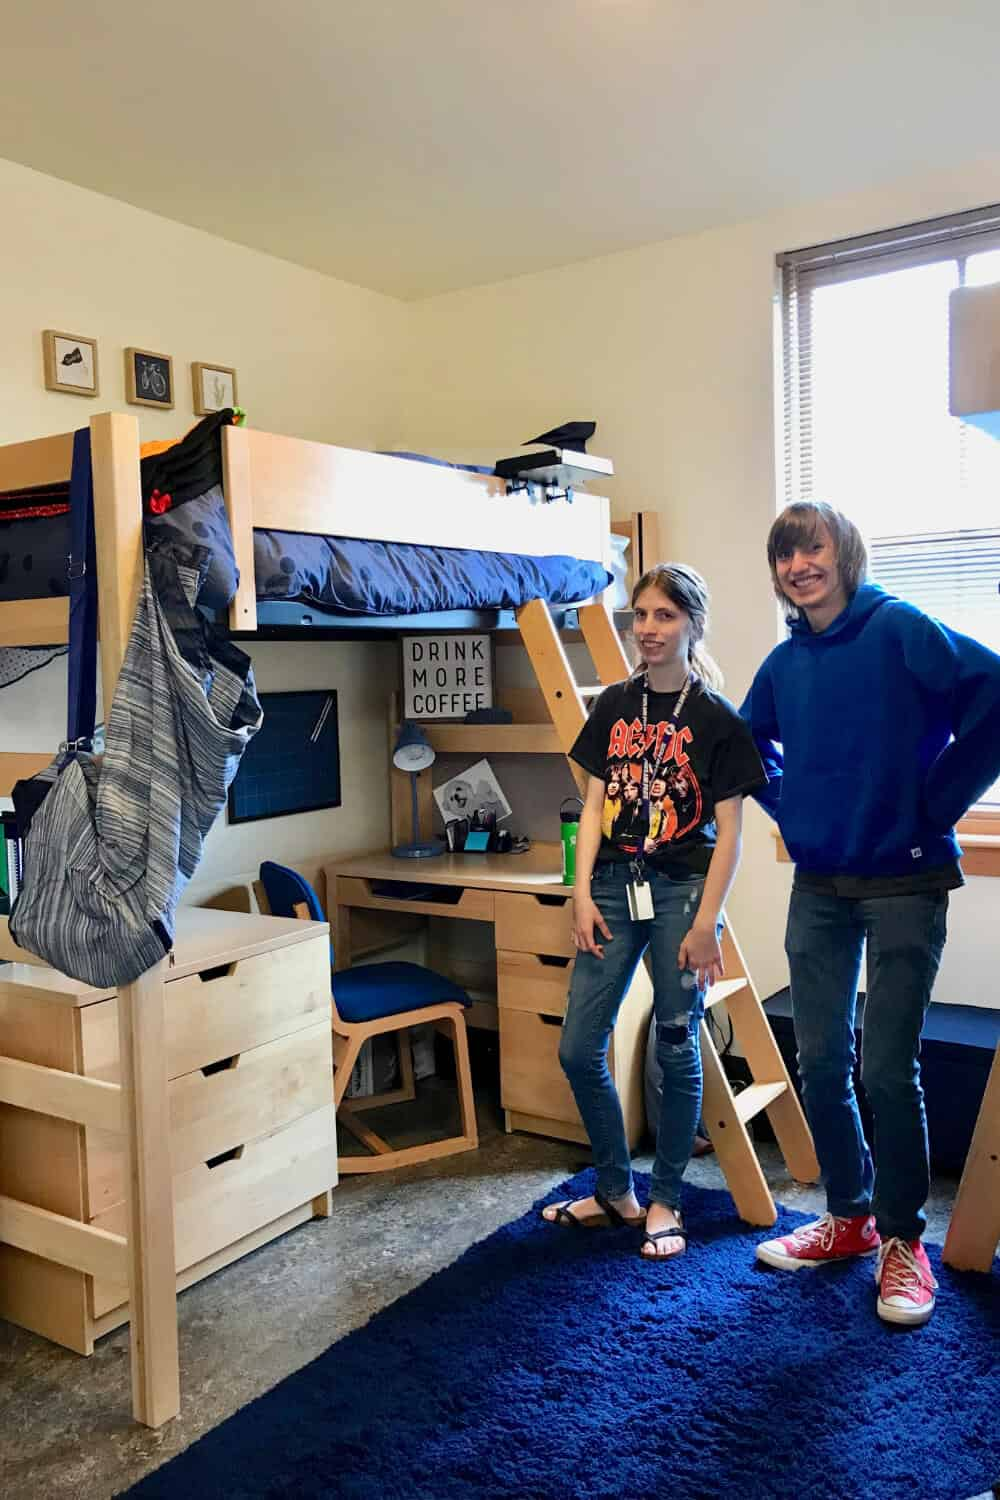 Sister & Brother in Dorm Room